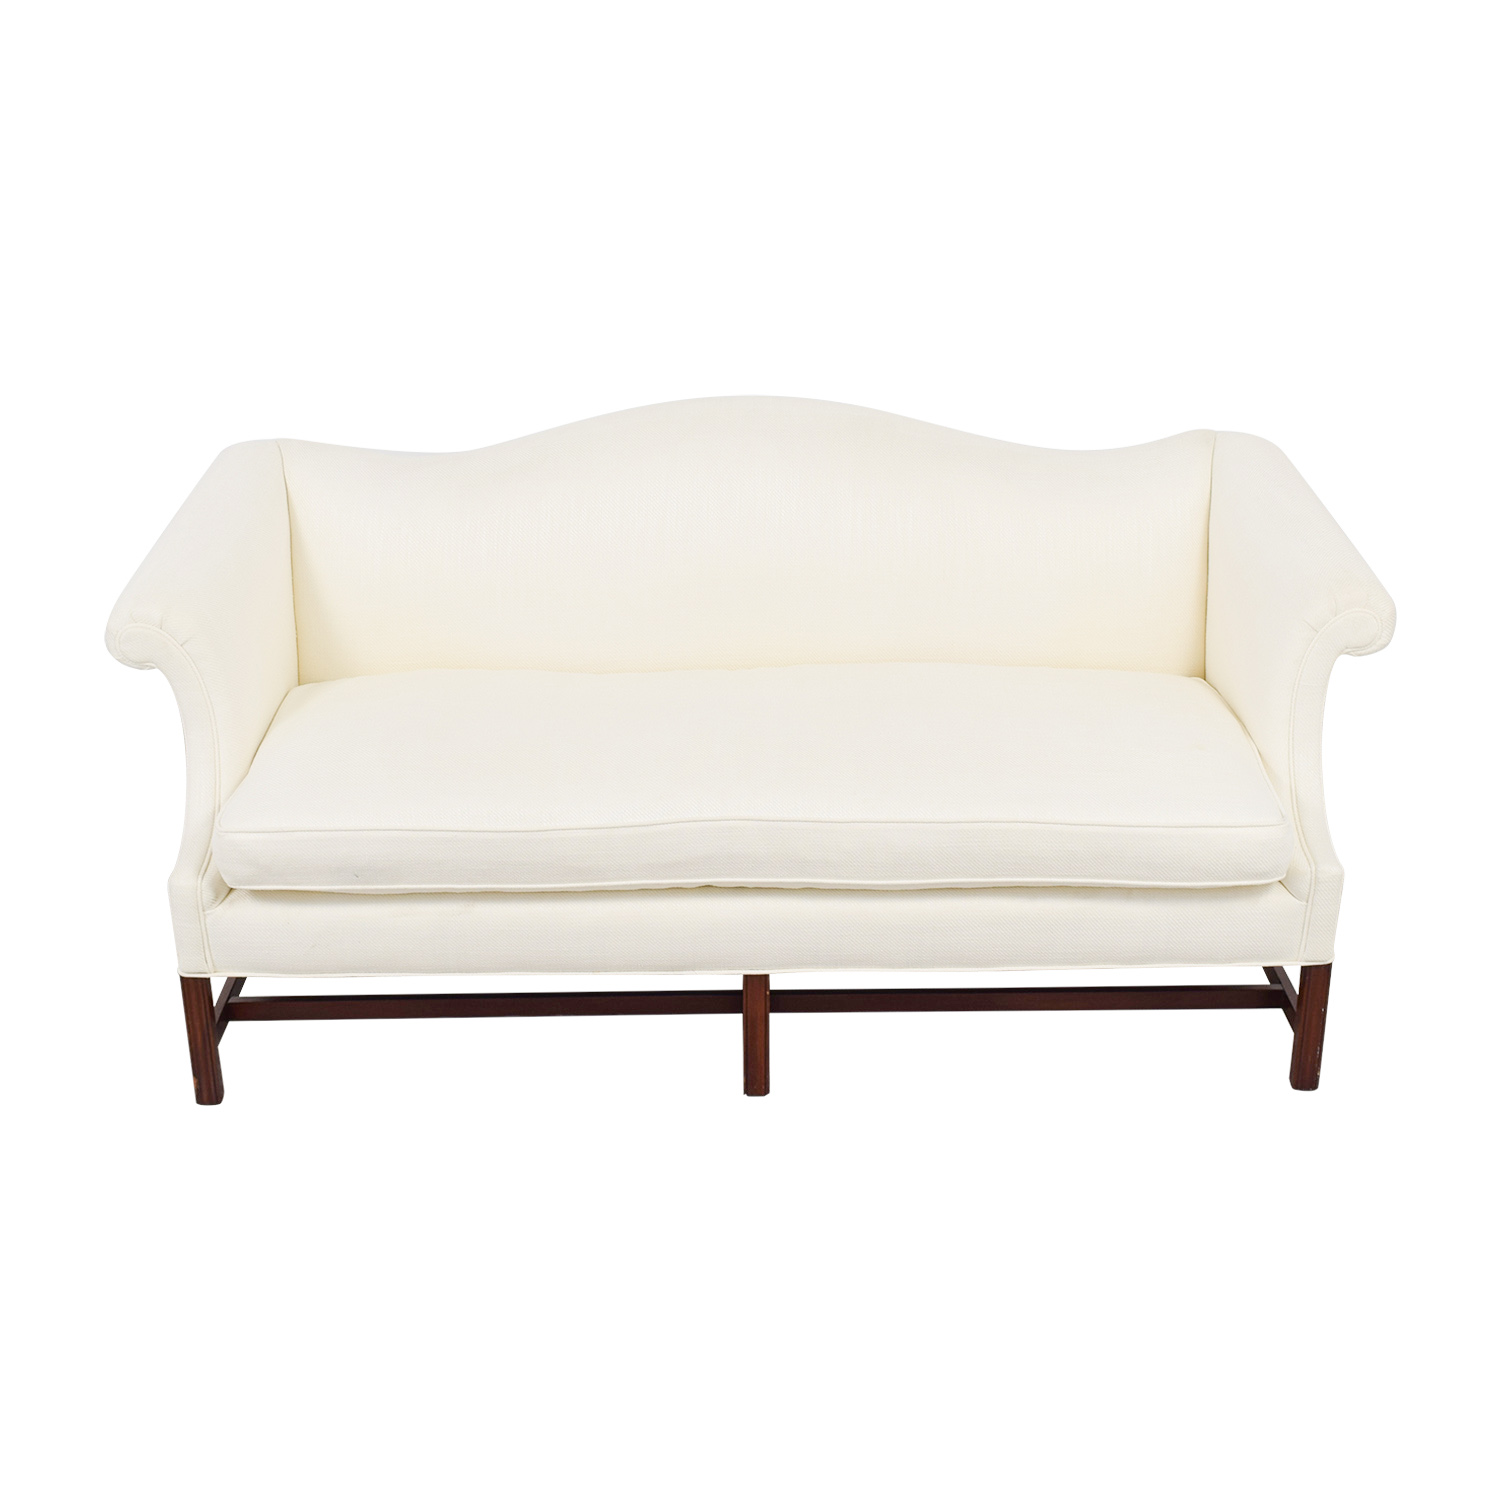 White Linen Camel Back Single-Cushion Couch sale